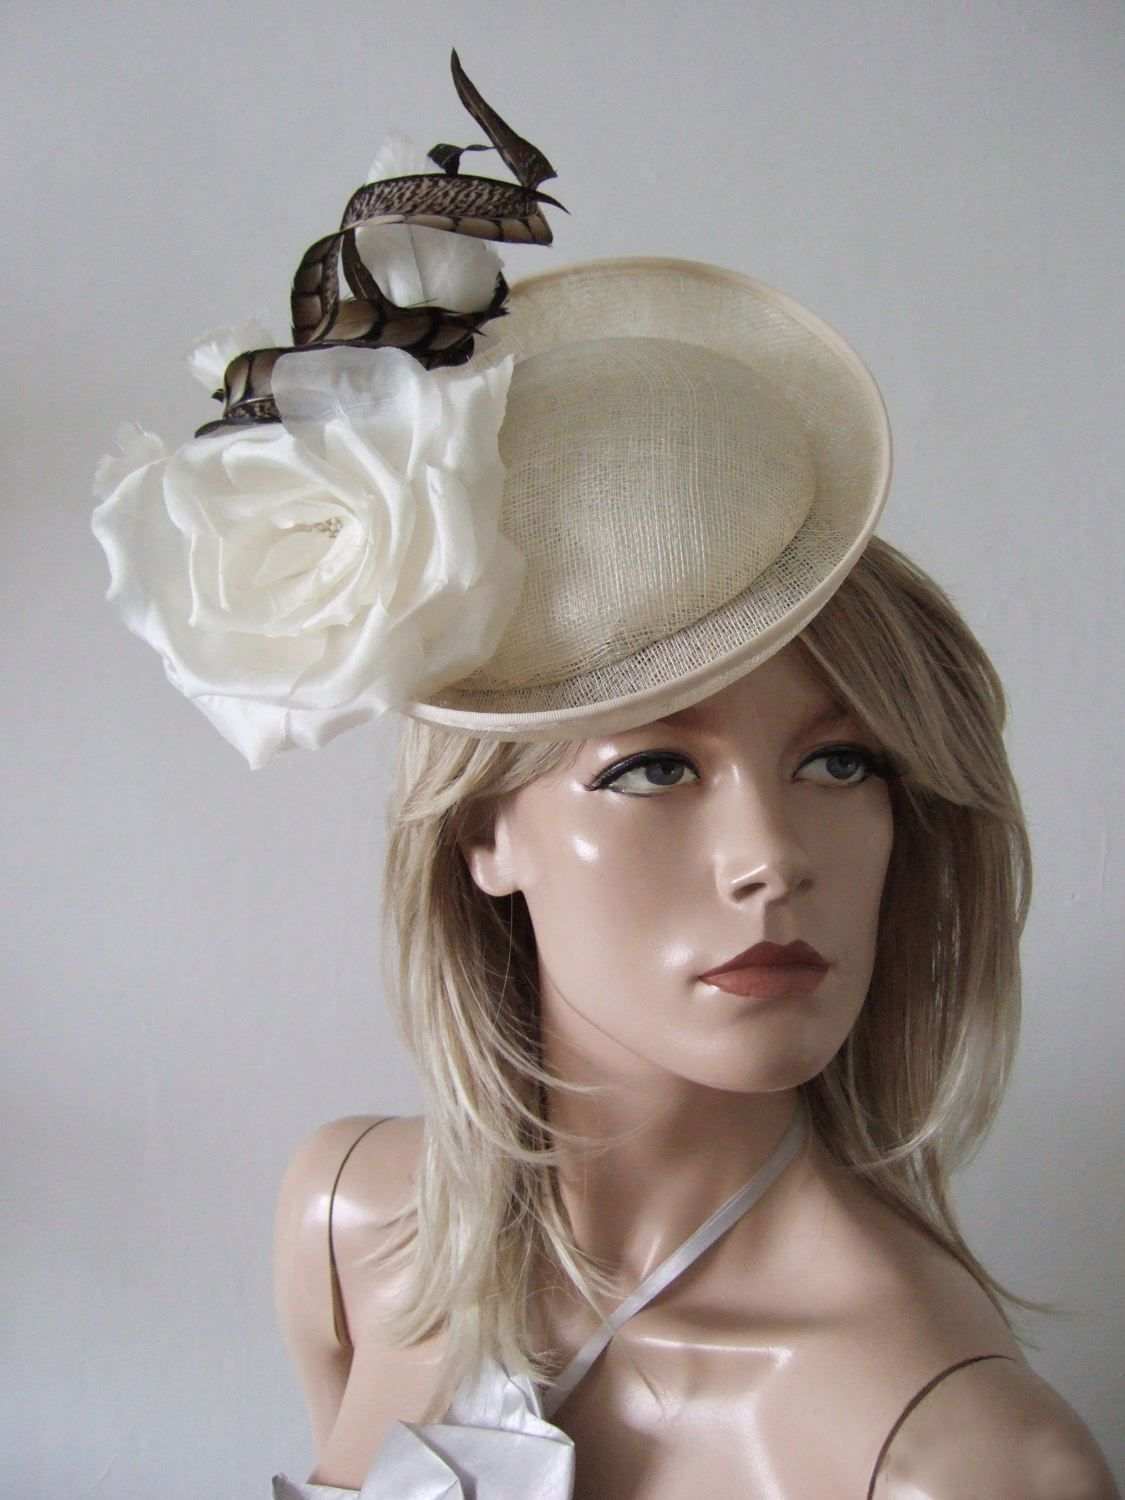 Nude kentucky derby party right! good